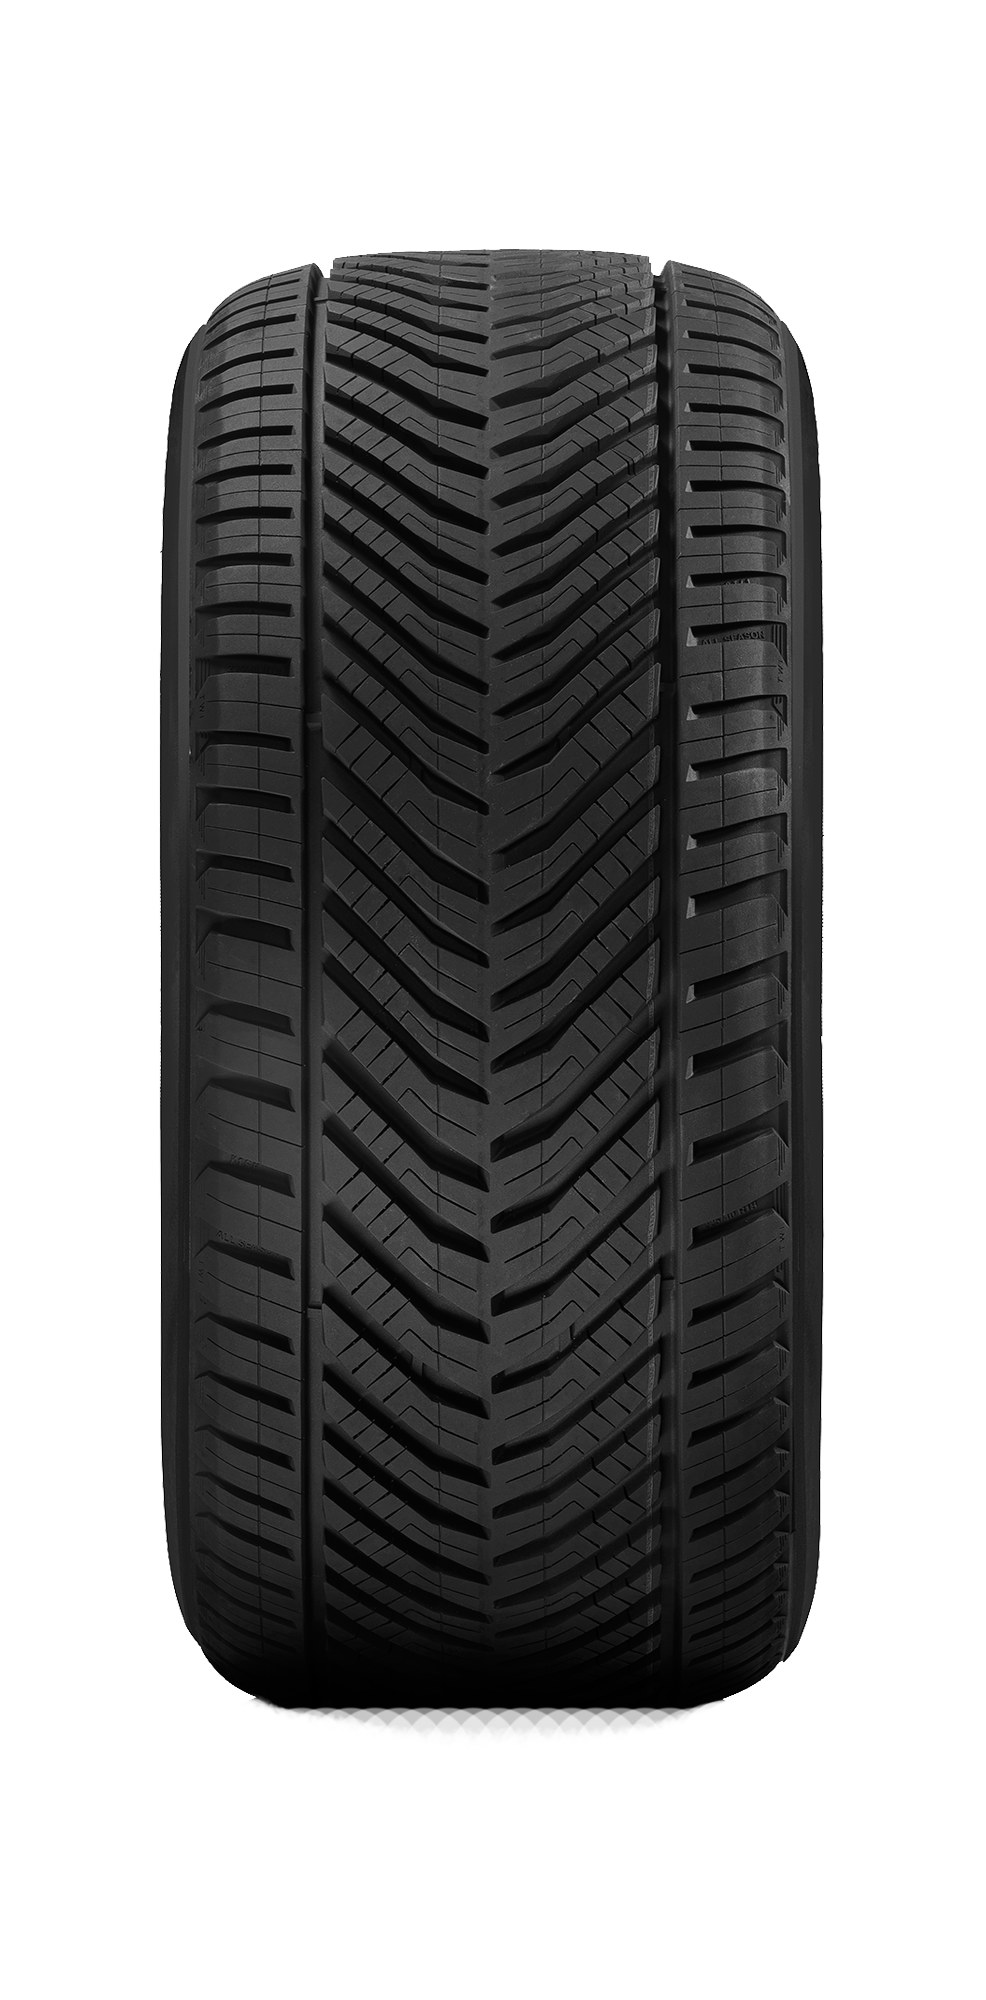 ORIUM 195/65 R15 All Season 95V XL